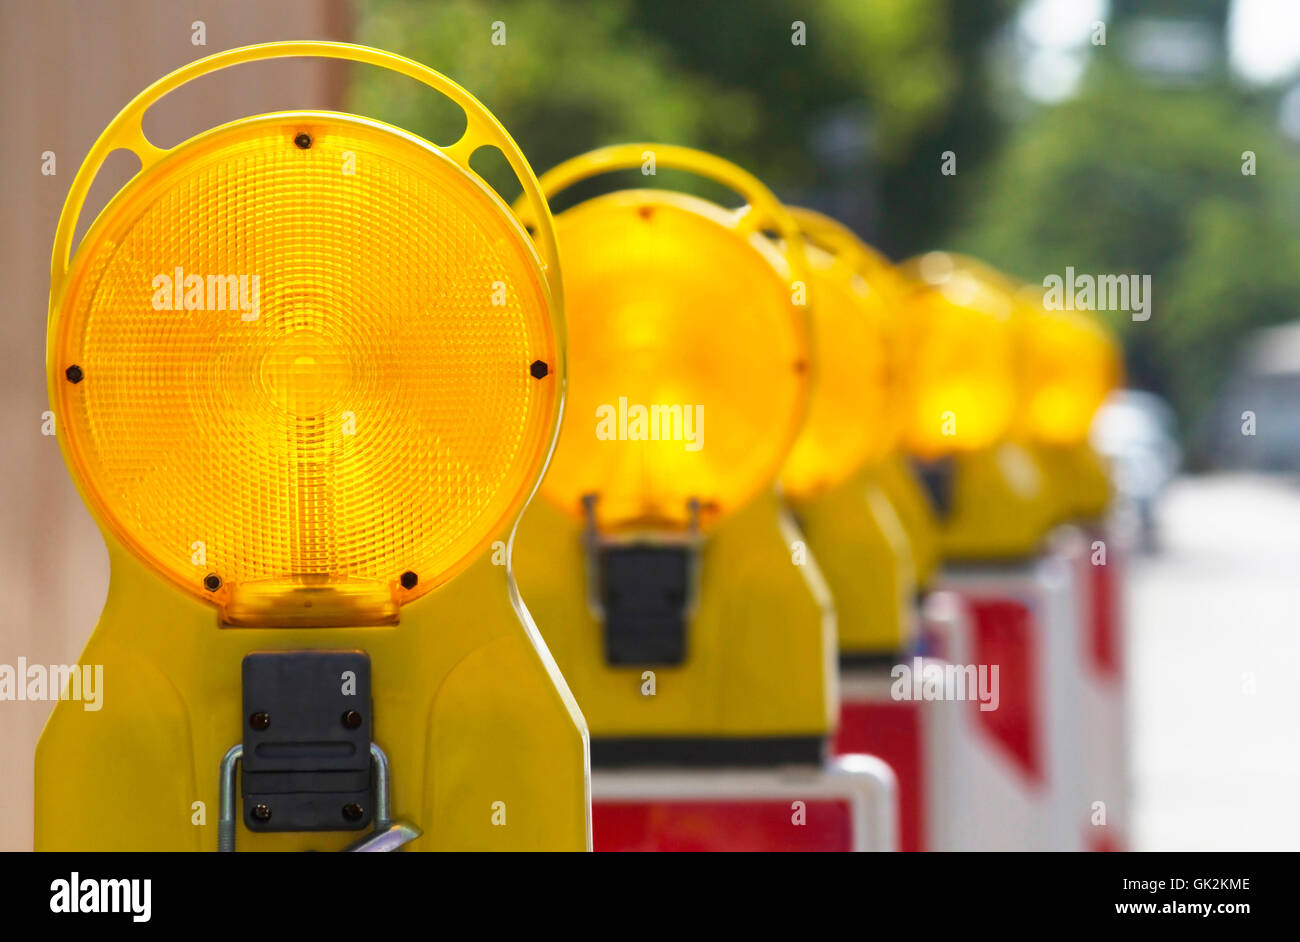 construction site lamps in series - Stock Image